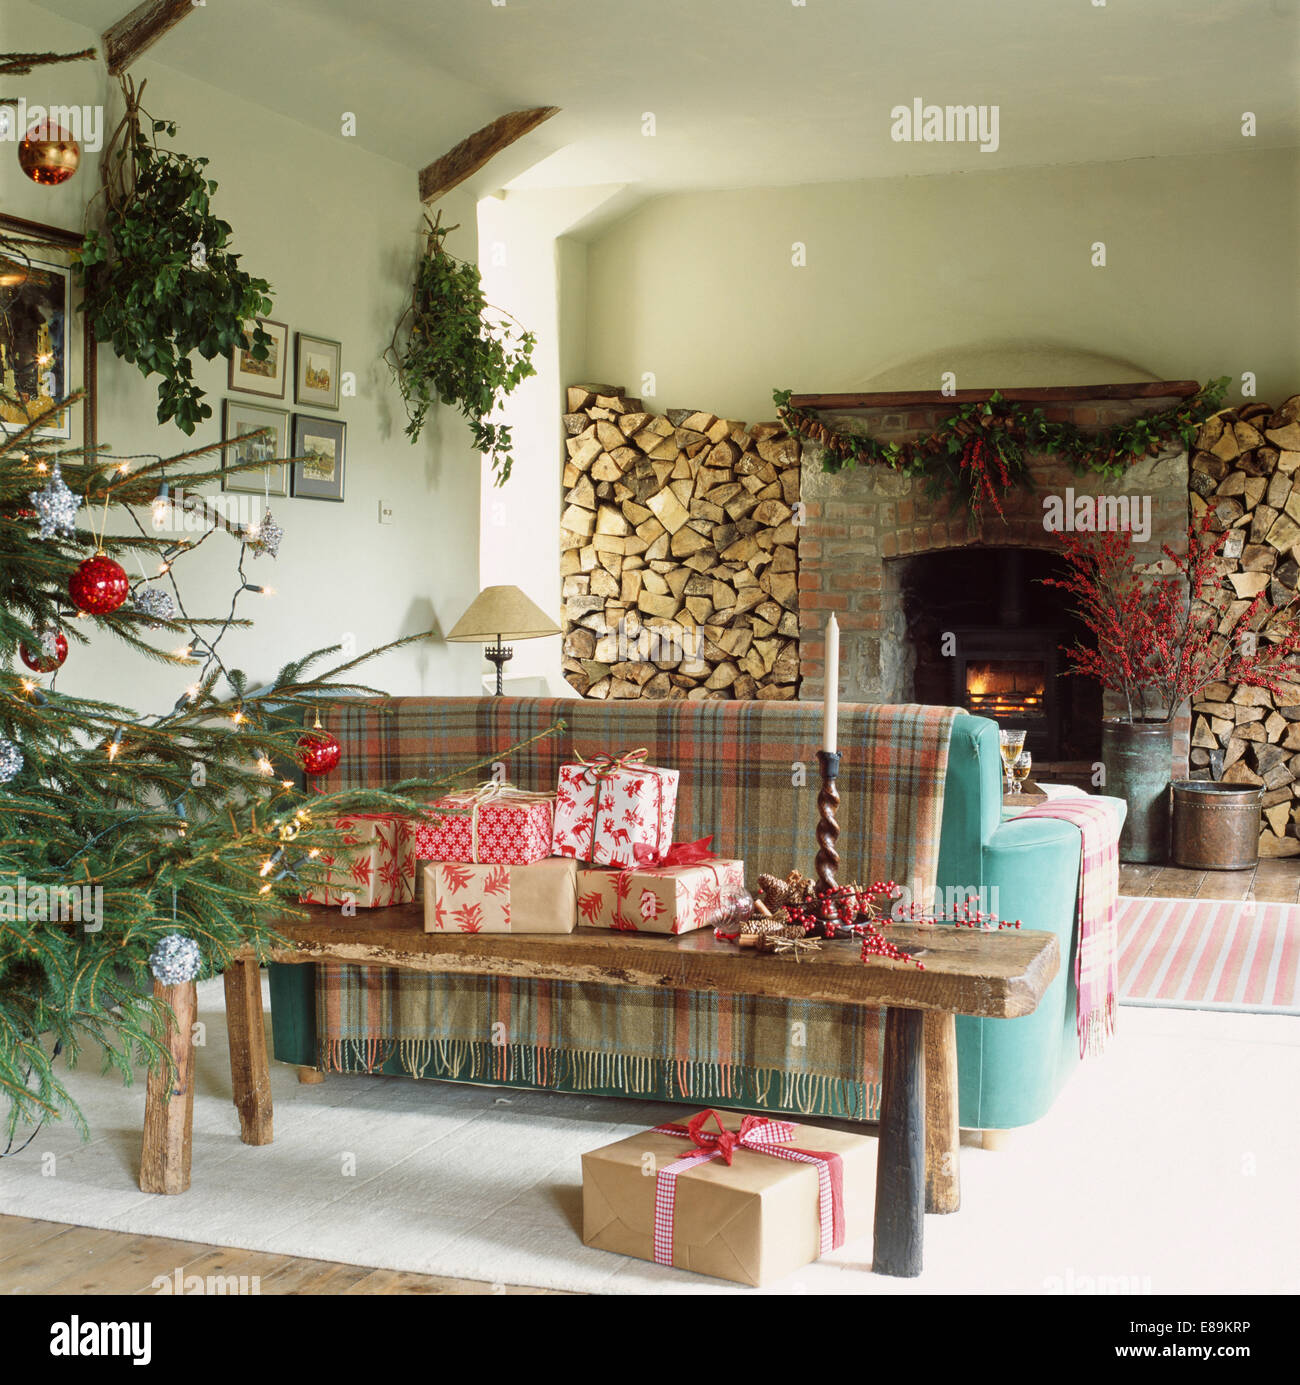 Christmas Presents On Rustic Wooden Bench Behind Sofa In Living Room With Logs Stored Either